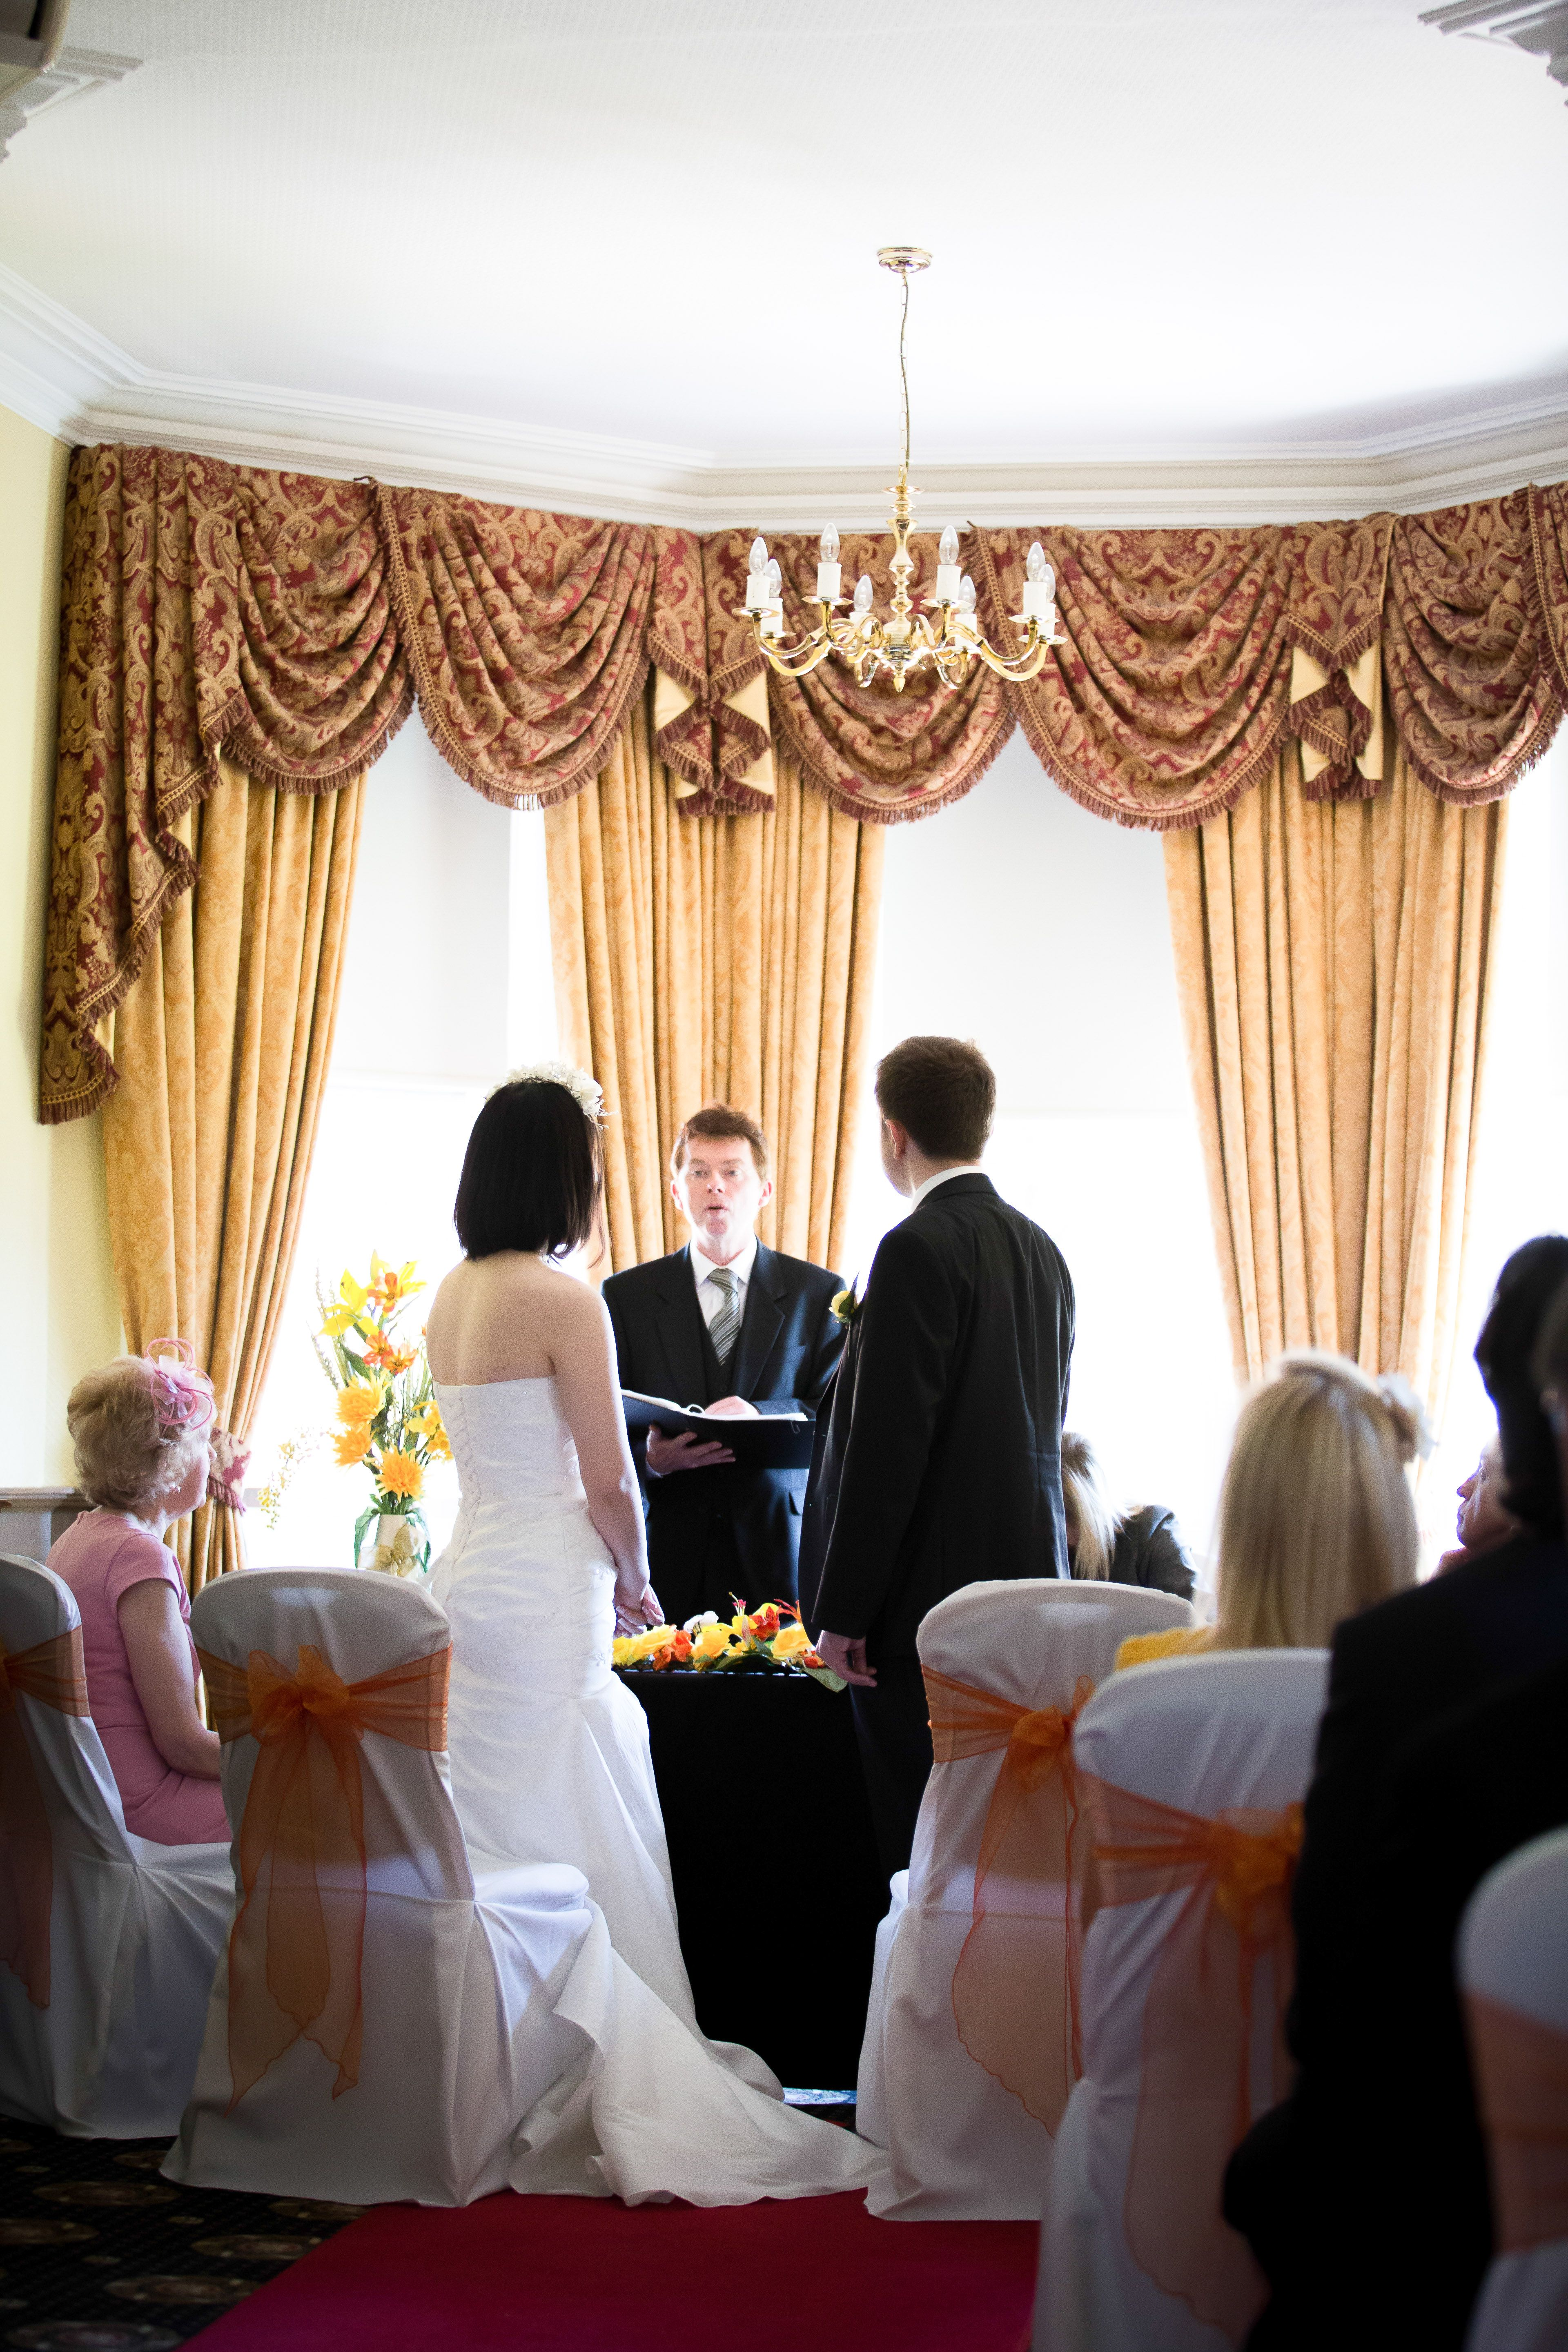 Wedding Ceremony Bracebridge Room At Moor Hall Hotel Spa Venues In Sutton Coldfield Image Courtesy Of Hart Harvey Photography